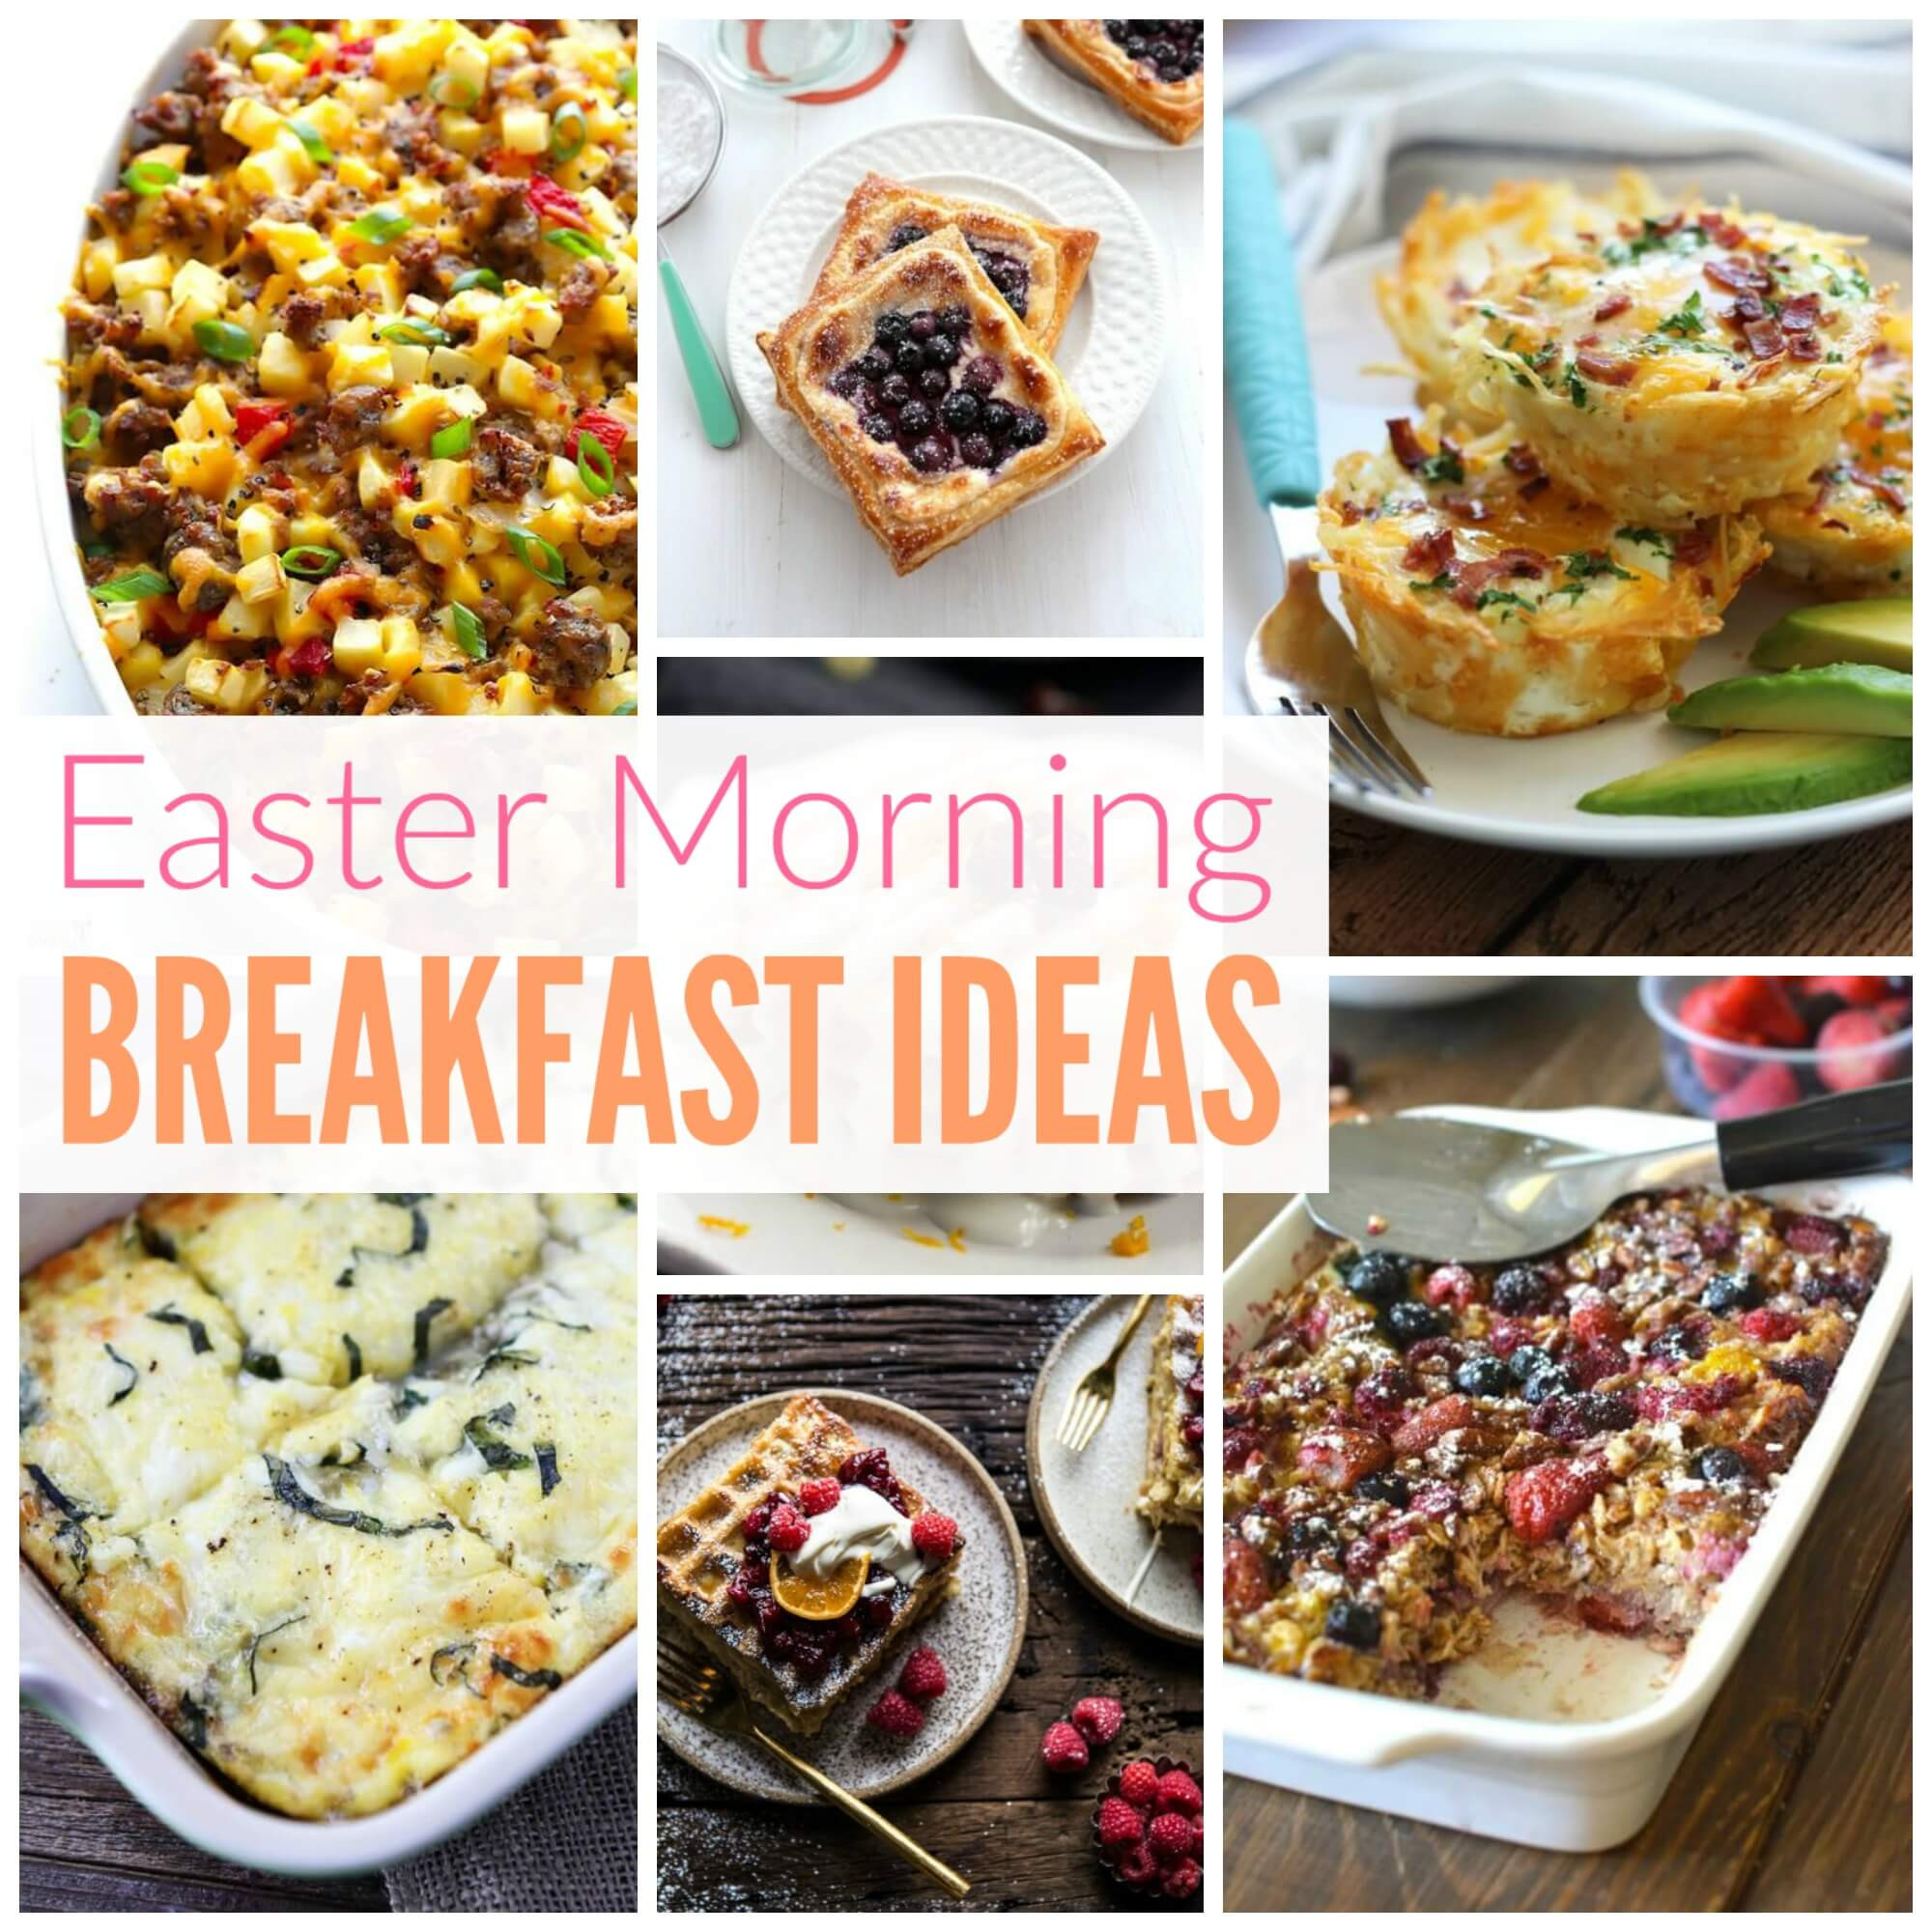 Easter Breakfast Recipes  Easter Breakfast Ideas and Brunch Recipes